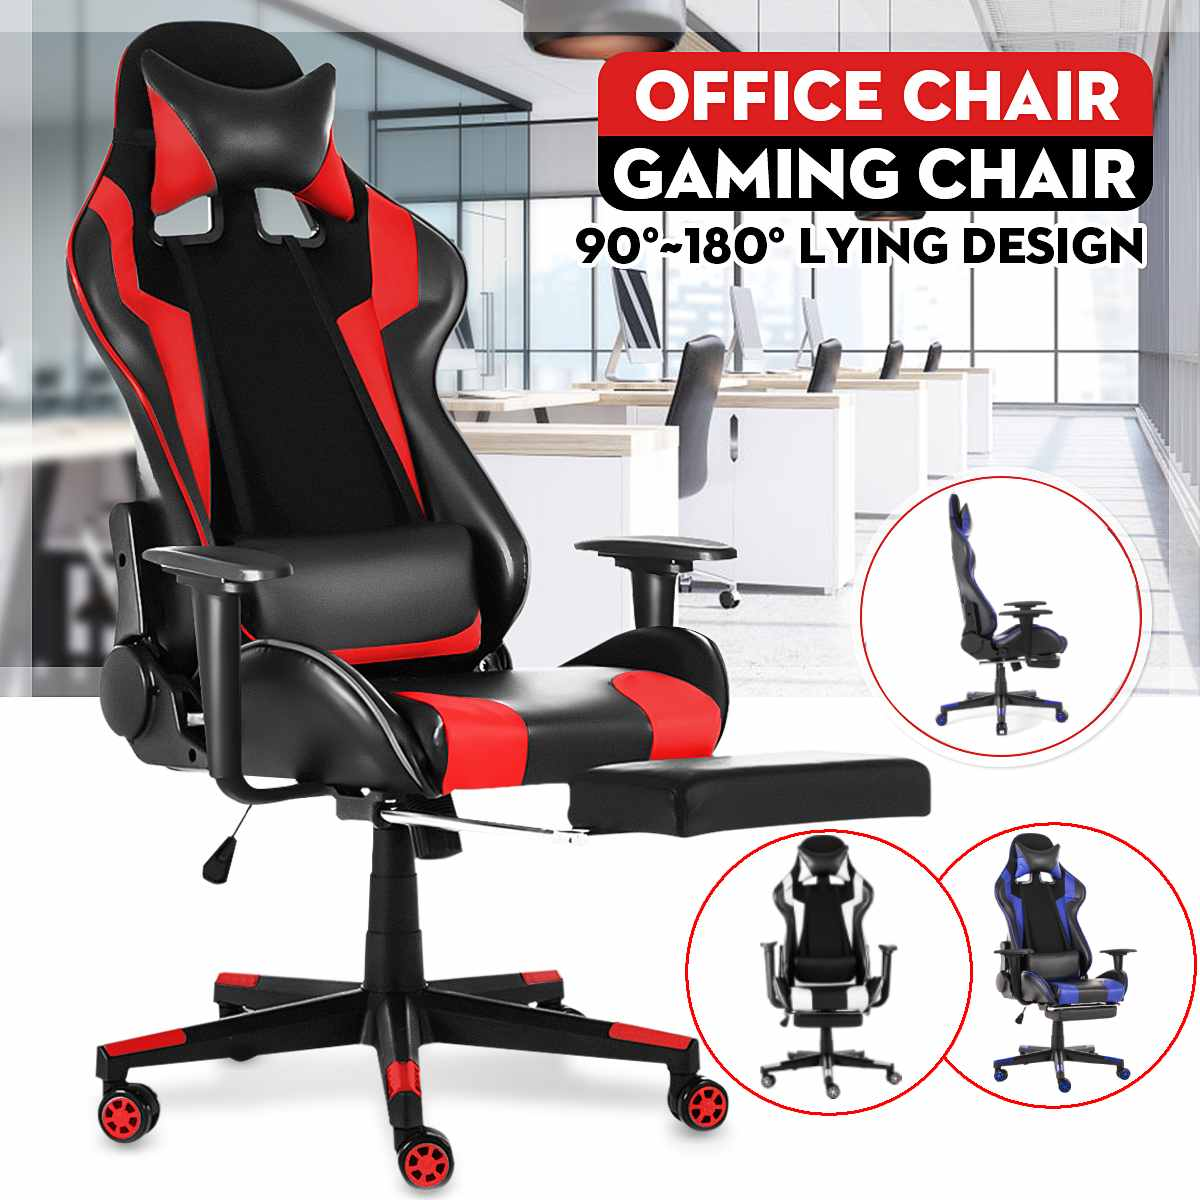 Hd578b594bed34a6392755e99d0dbdd75n - WCG Gaming Chair Computer Armchair Office Chairs Home Swivel Massage Chair Lifting Adjustable Desk Chair Lying Recliner Chair